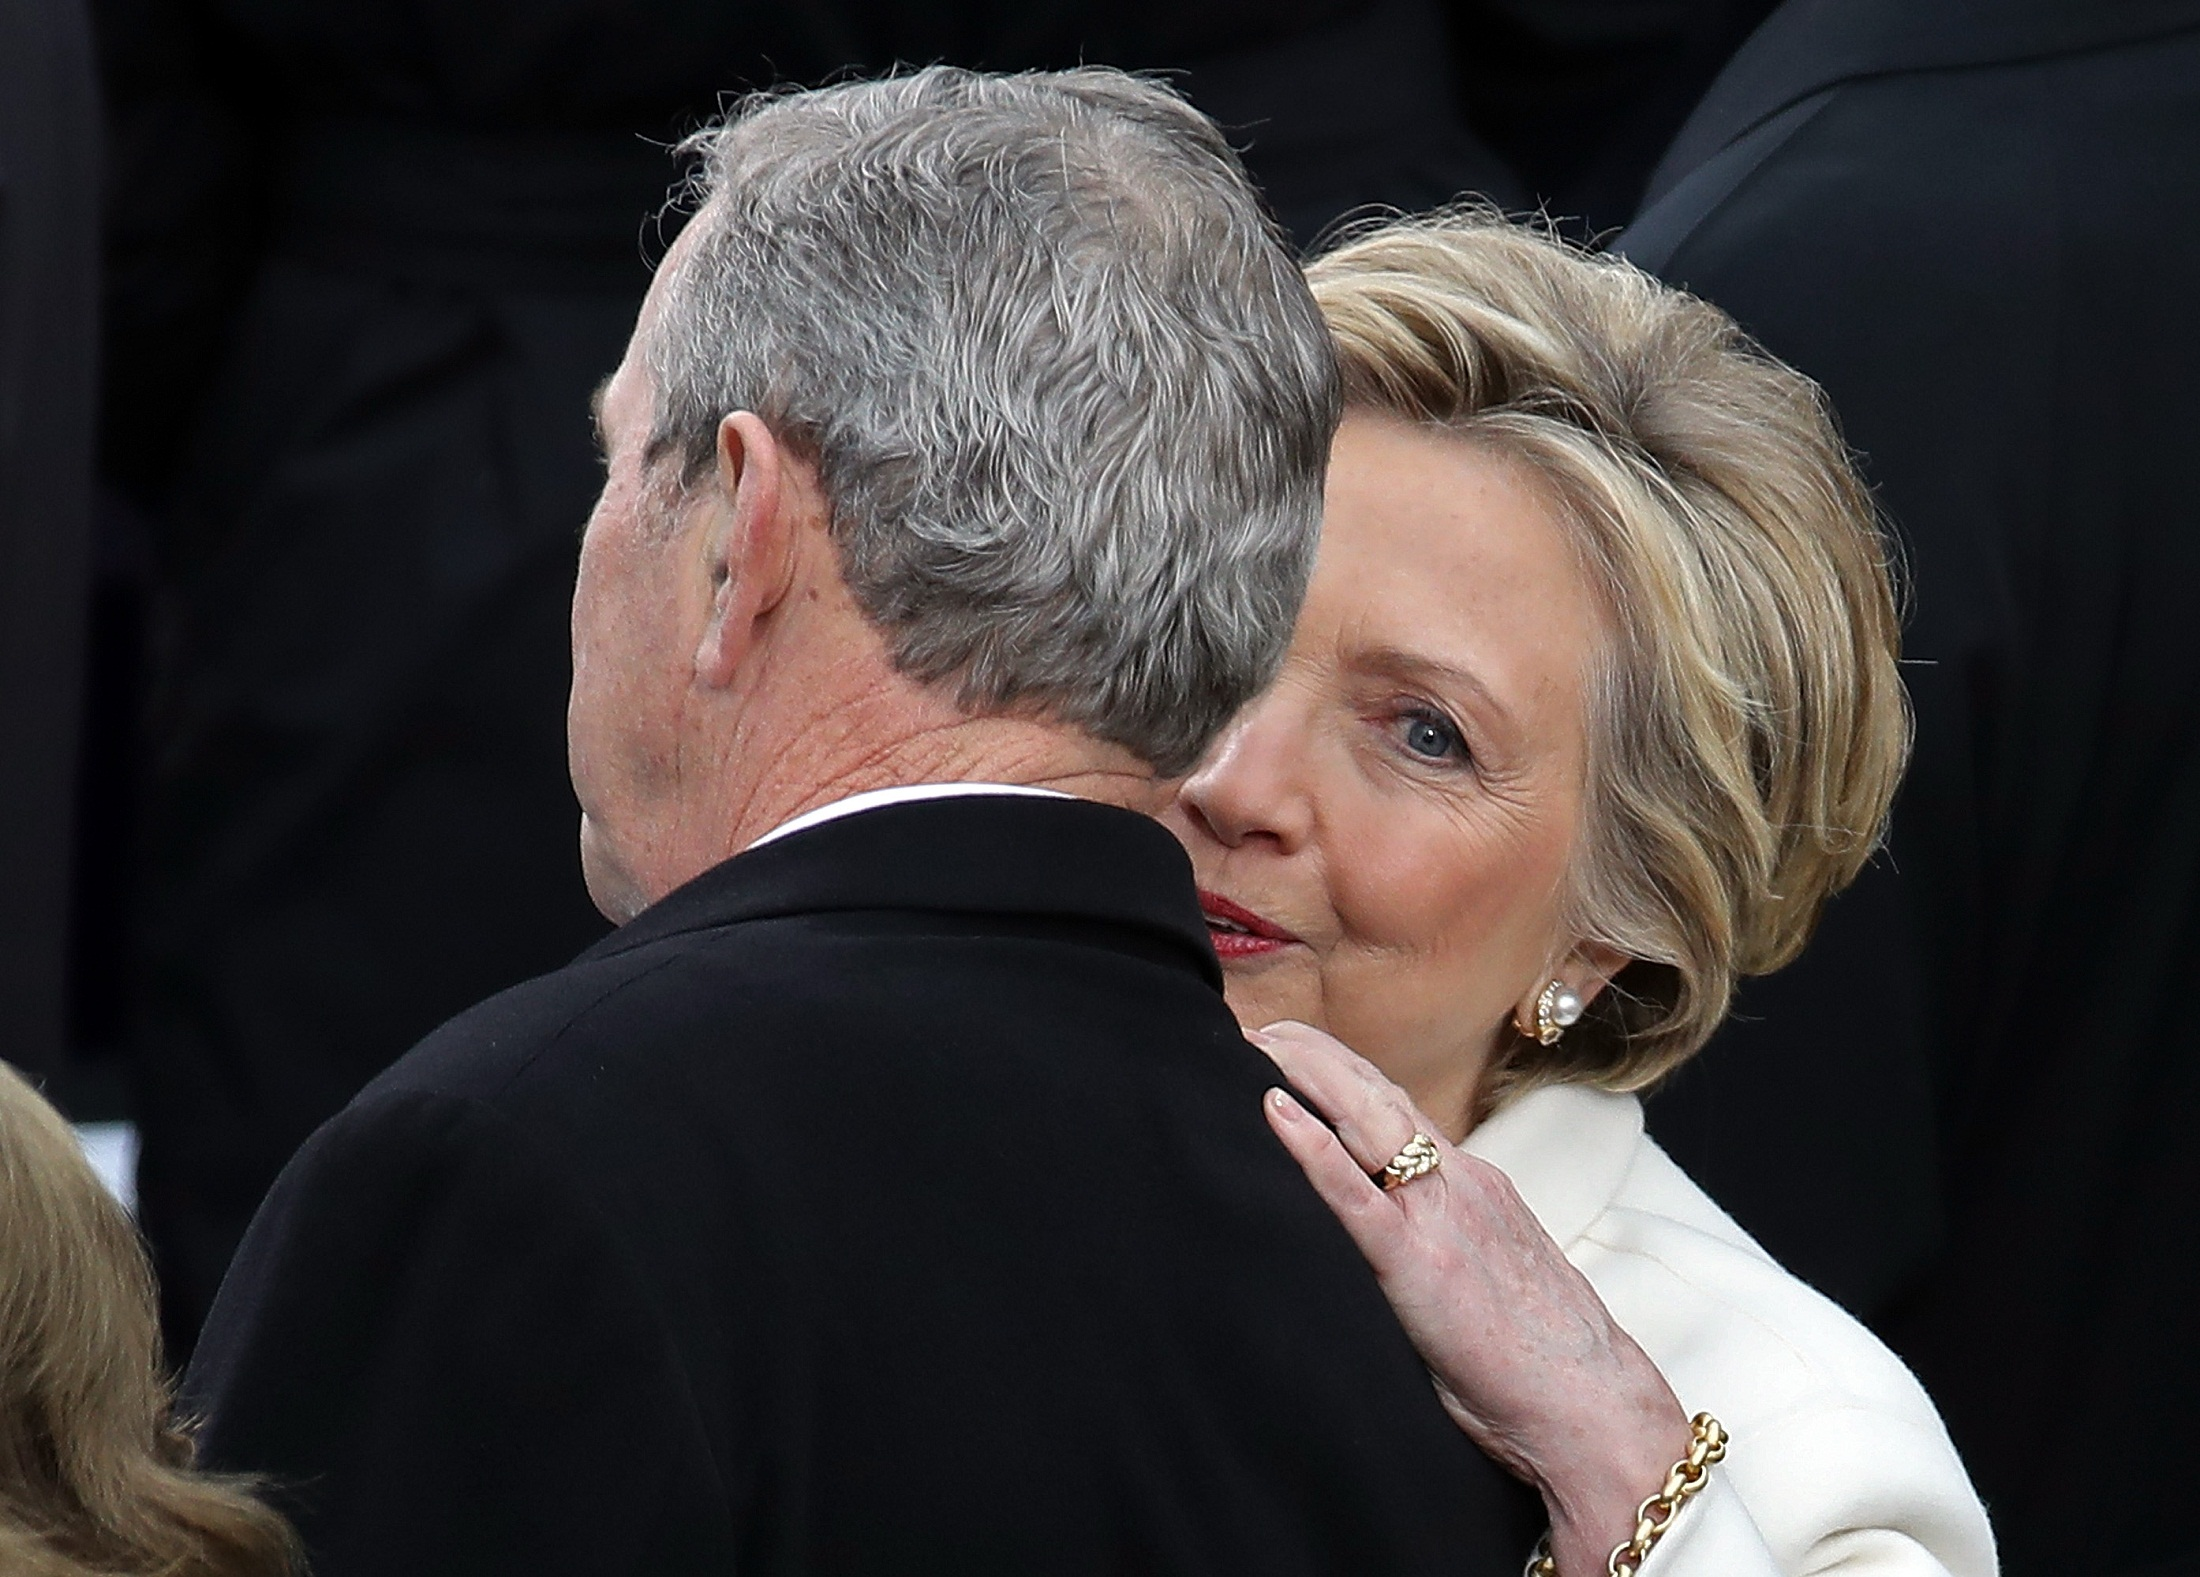 WASHINGTON, DC - JANUARY 20: Former Democratic presidential nominee Hillary Clinton (R) talks to former President George W. Bush arrives on the West Front of the U.S. Capitol on January 20, 2017 in Washington, DC. In today's inauguration ceremony Donald J. Trump becomes the 45th president of the United States.   Drew Angerer/Getty Images/AFP